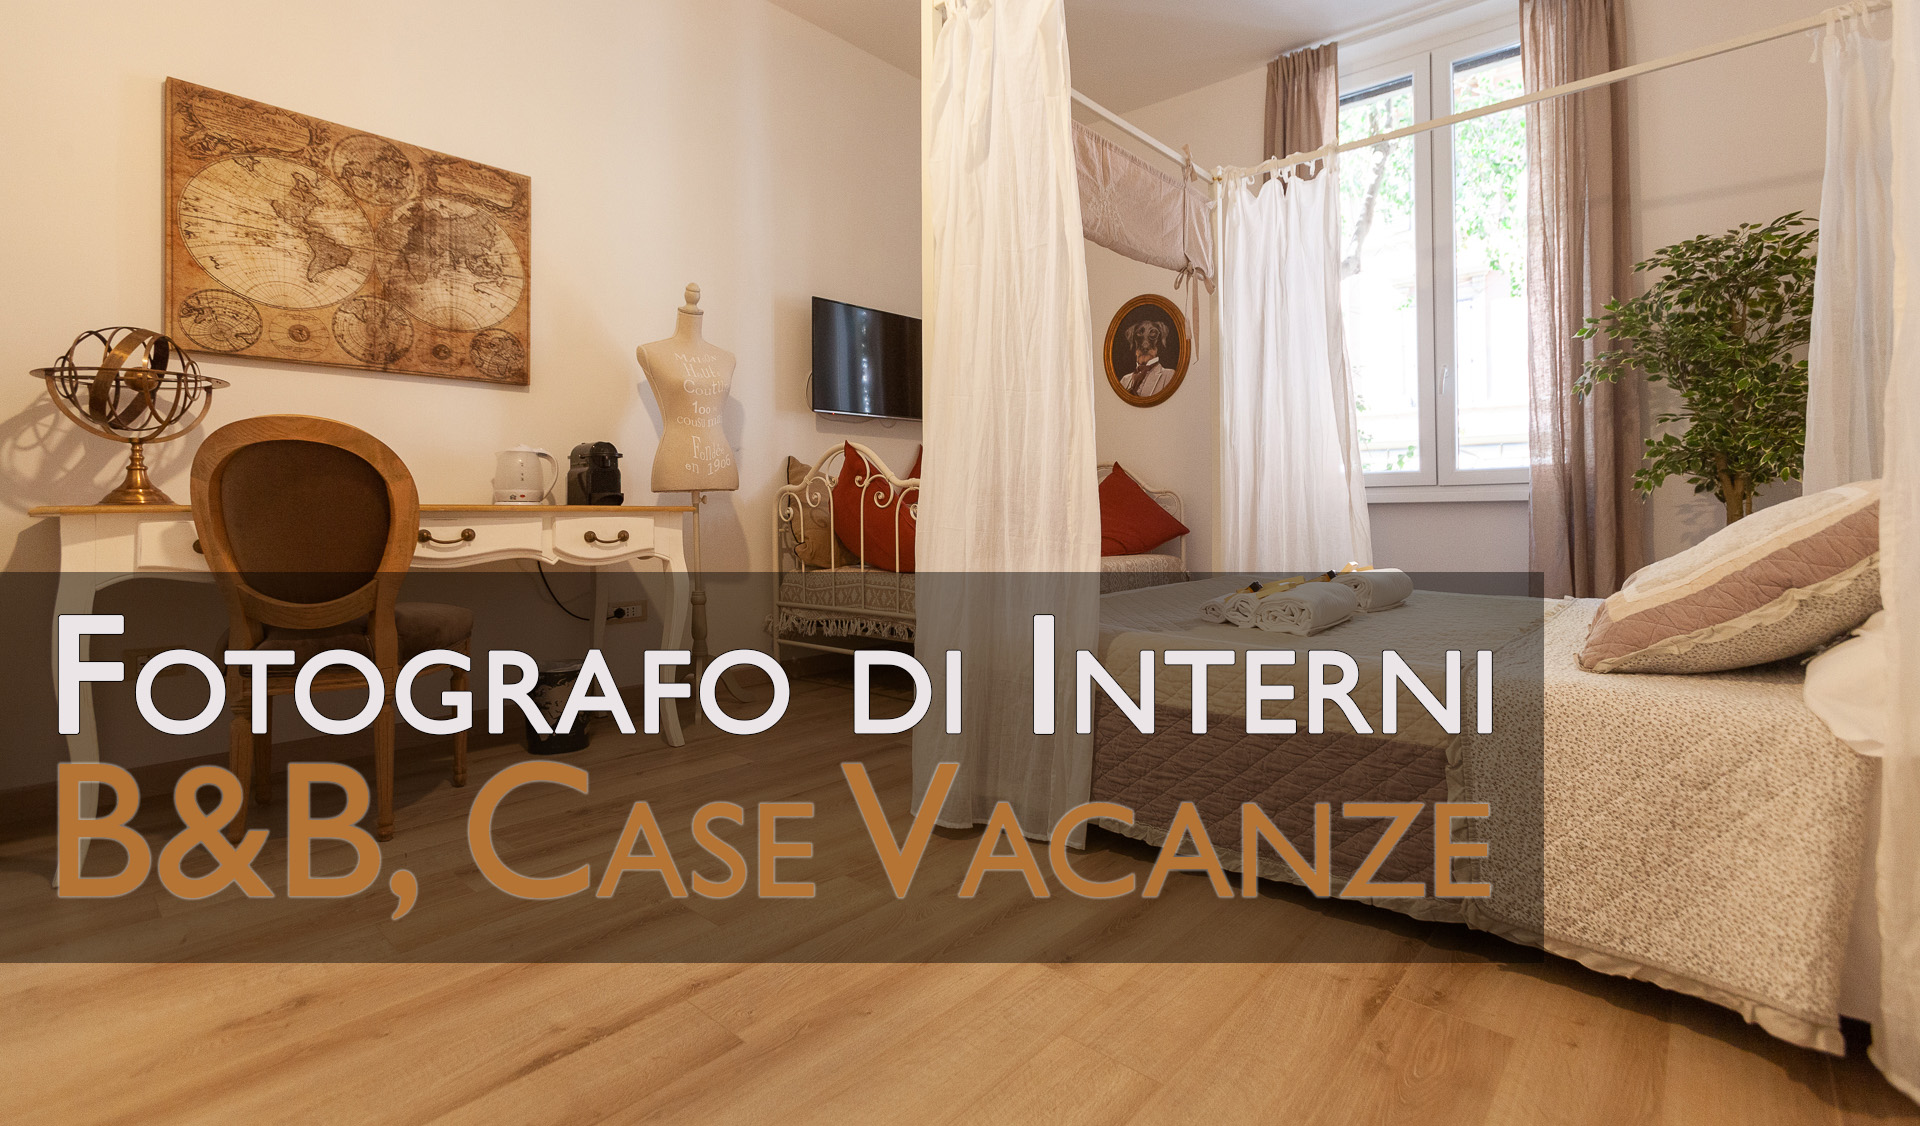 Fotografo Case Vacanze Bed Breakfast Roma Copyright Angelo Cordeschi